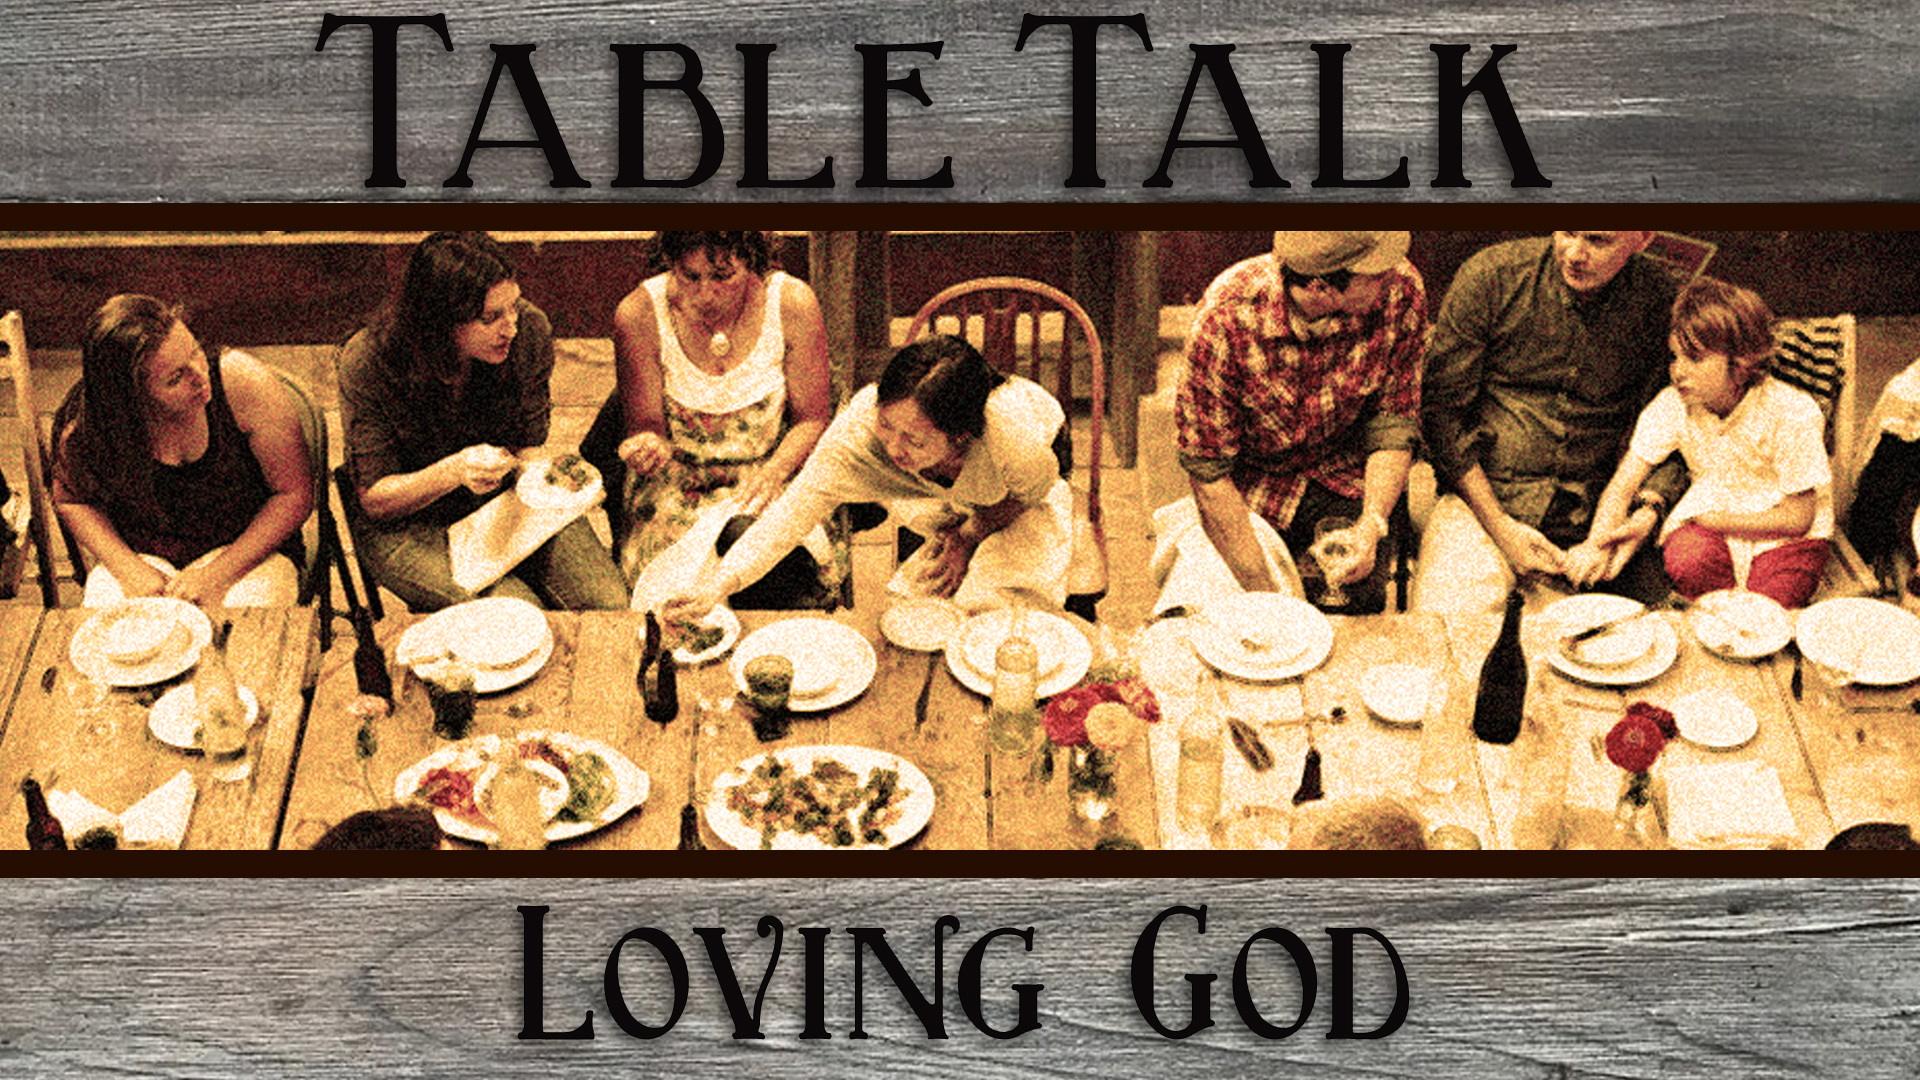 TableTalk_LovingGod_SANCTUARY